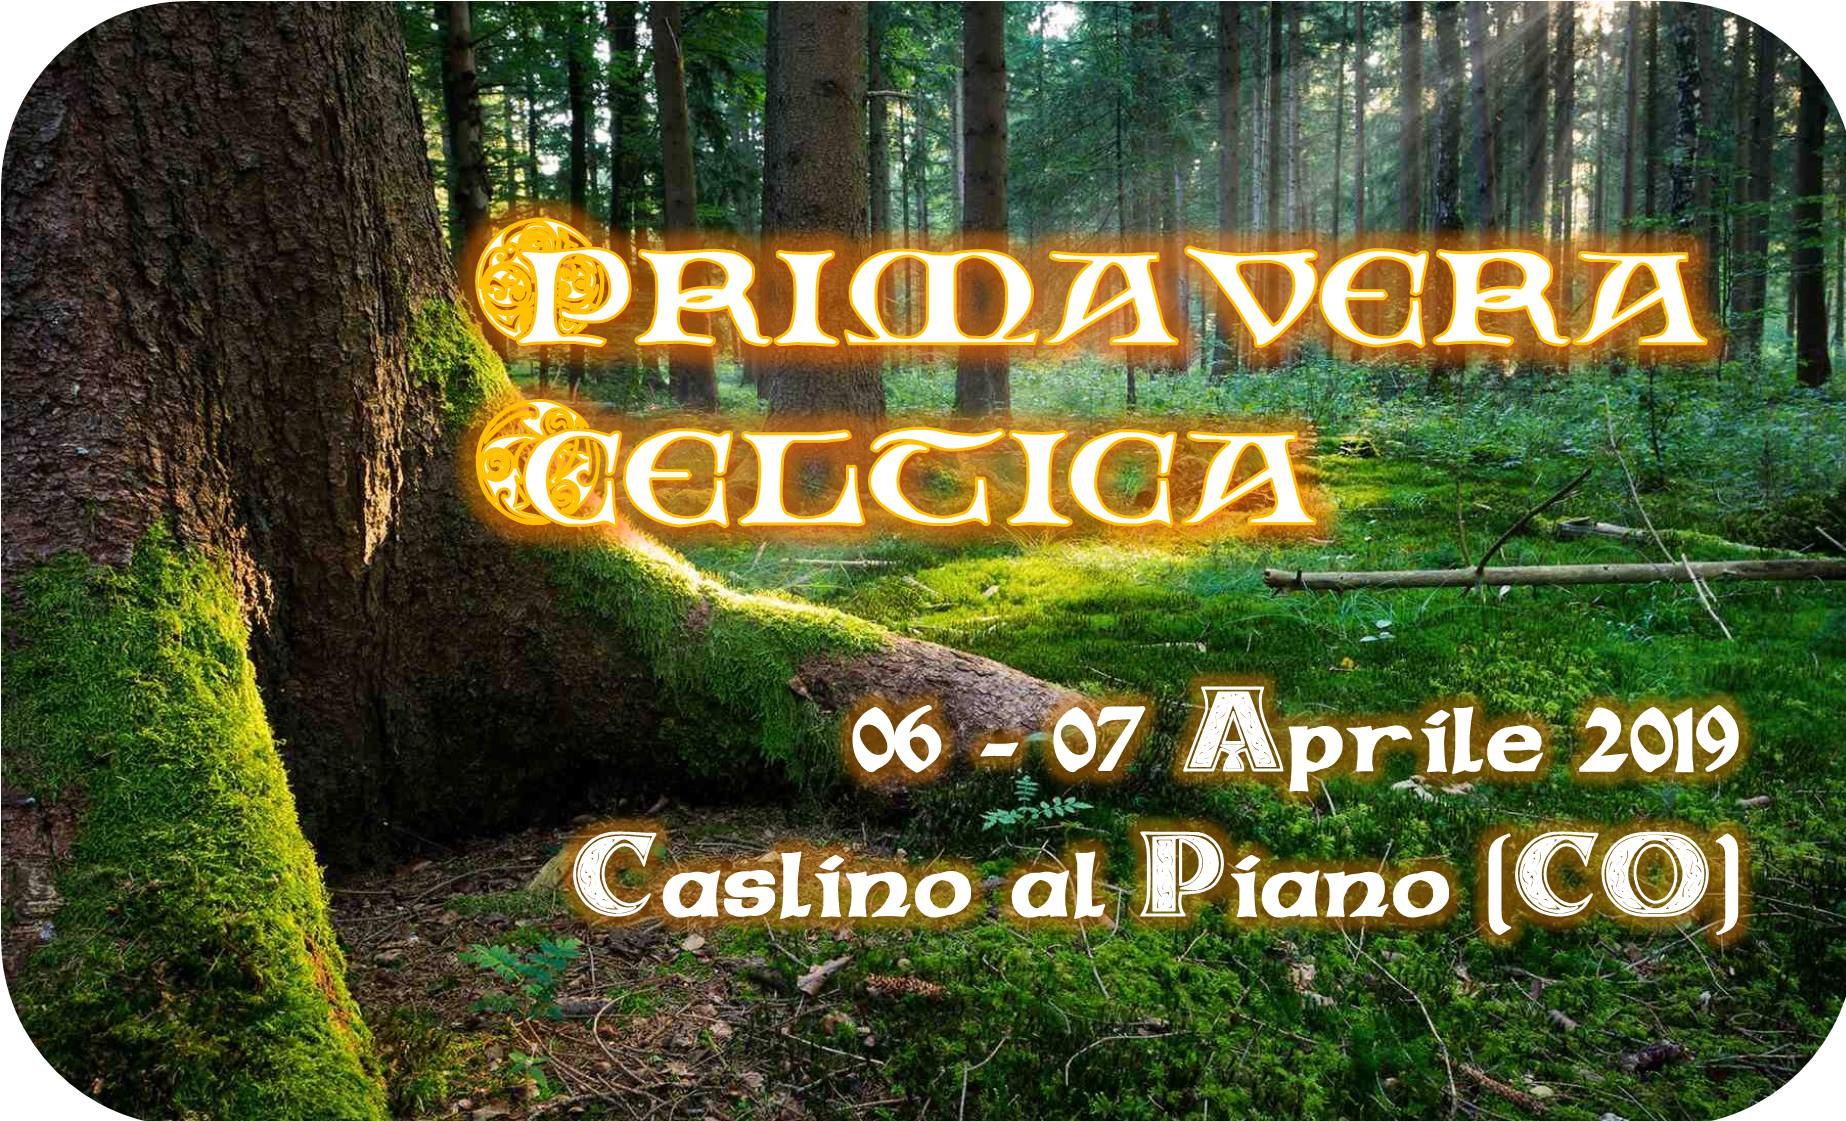 Primavera Celtica (CO)